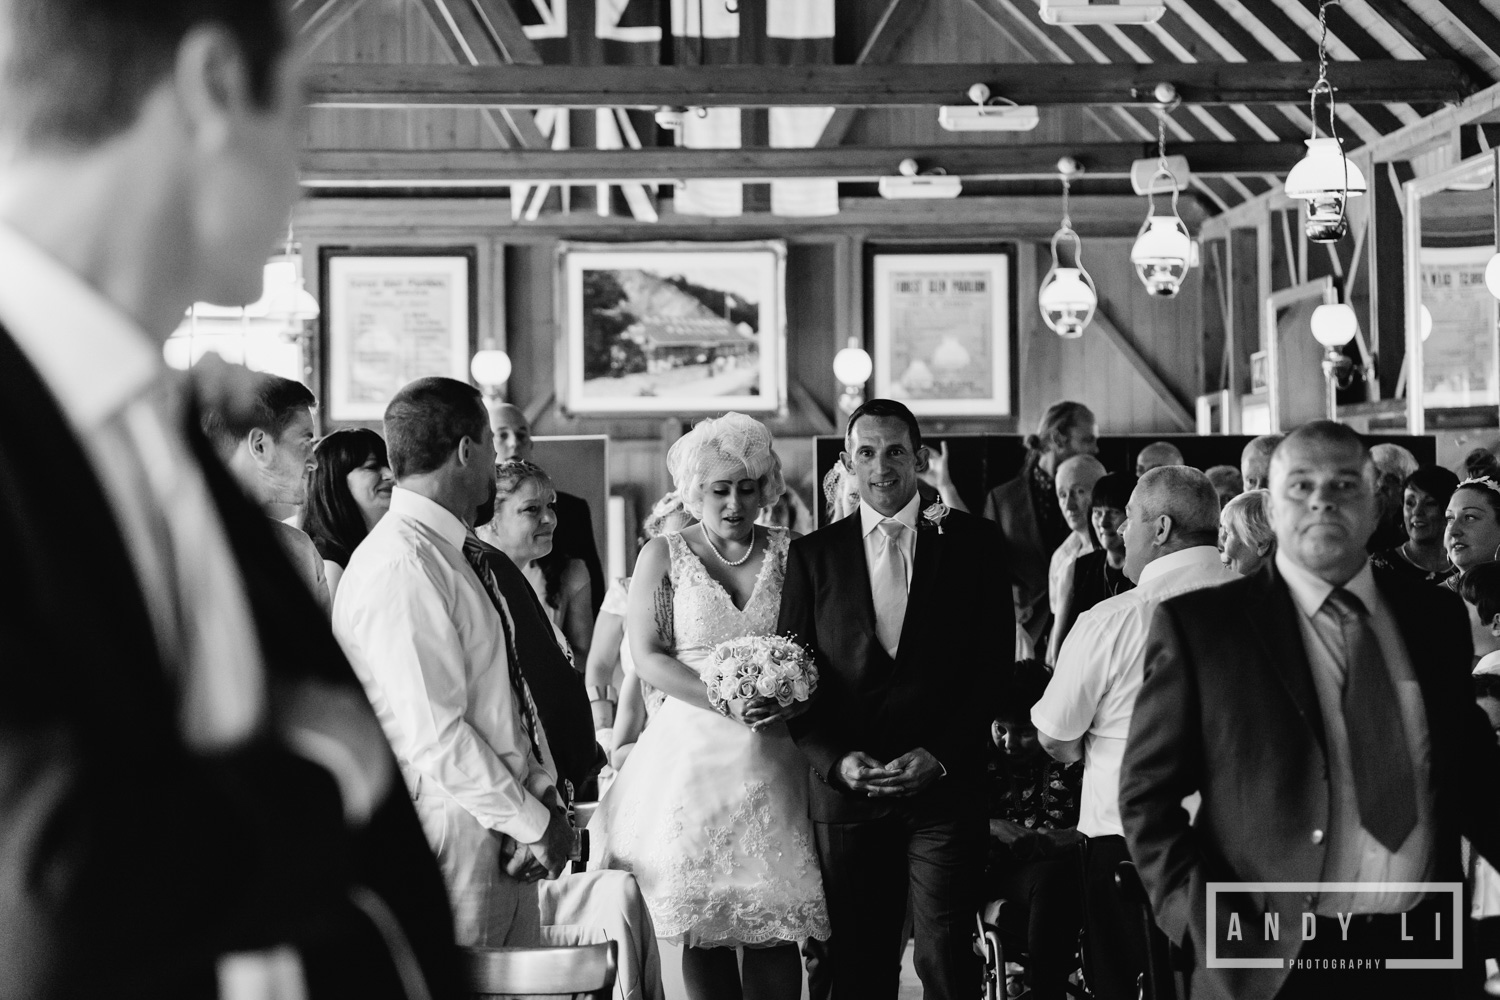 Blists Hill Ironbridge Wedding Photography-Andy Li Photography-225.jpg